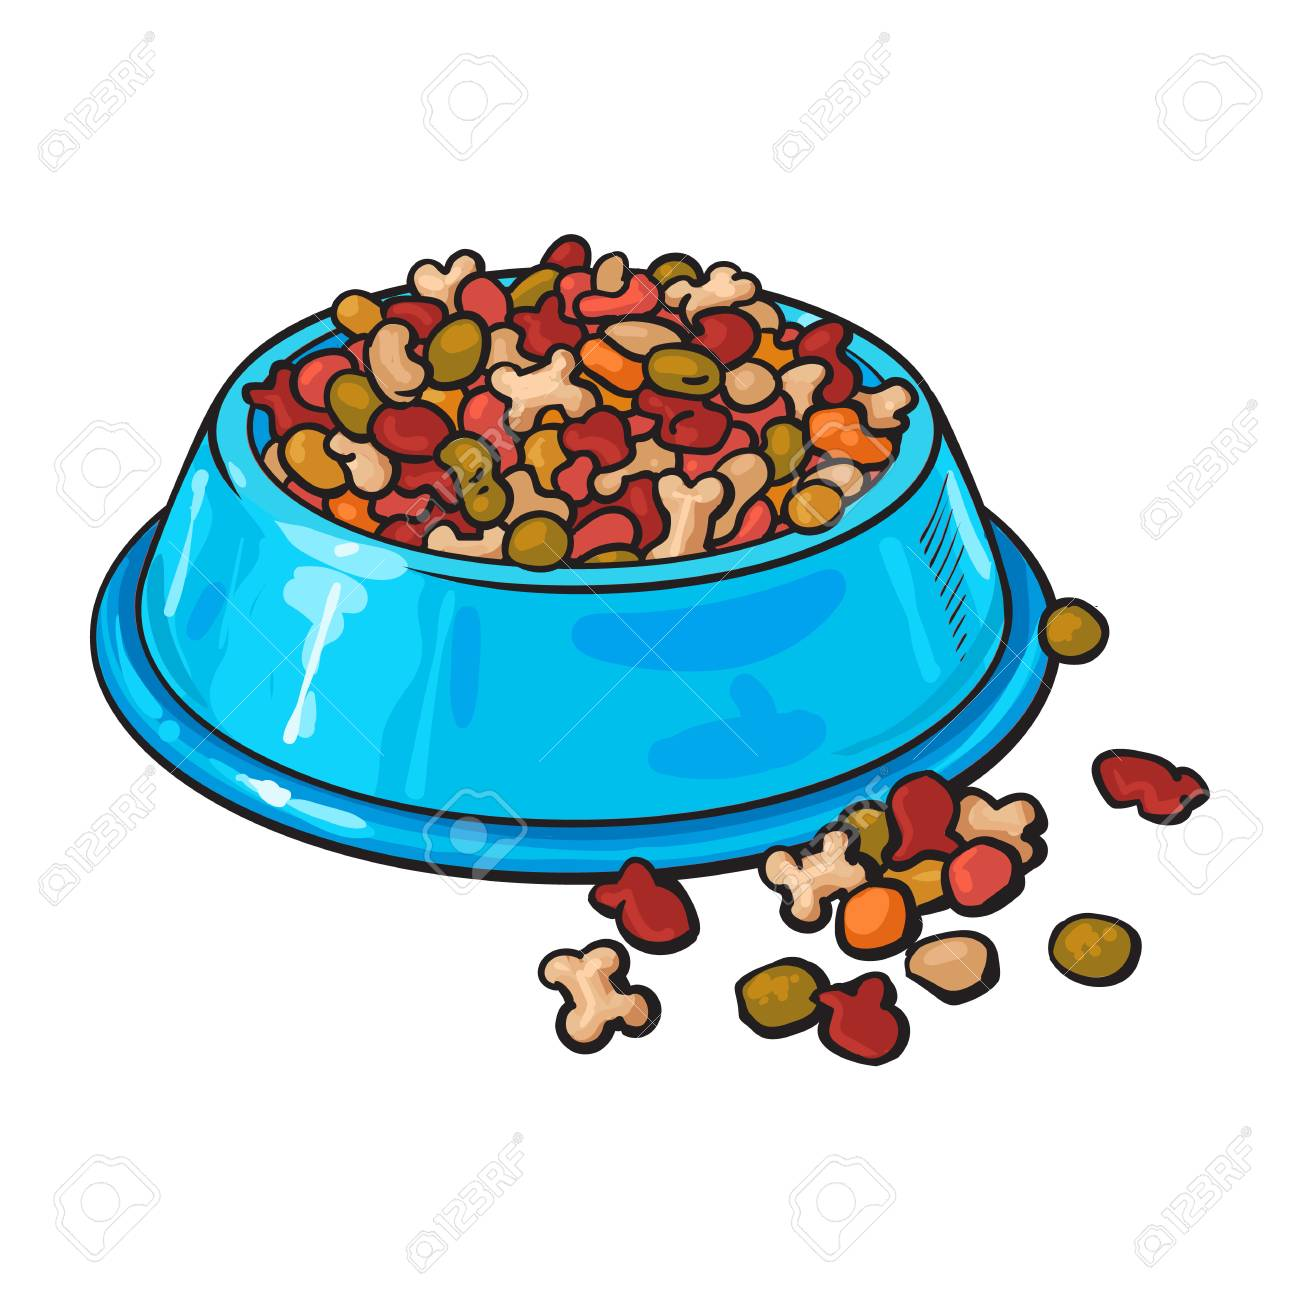 Blue shiny plastic bowl filled with dry pelleted food for pet,...